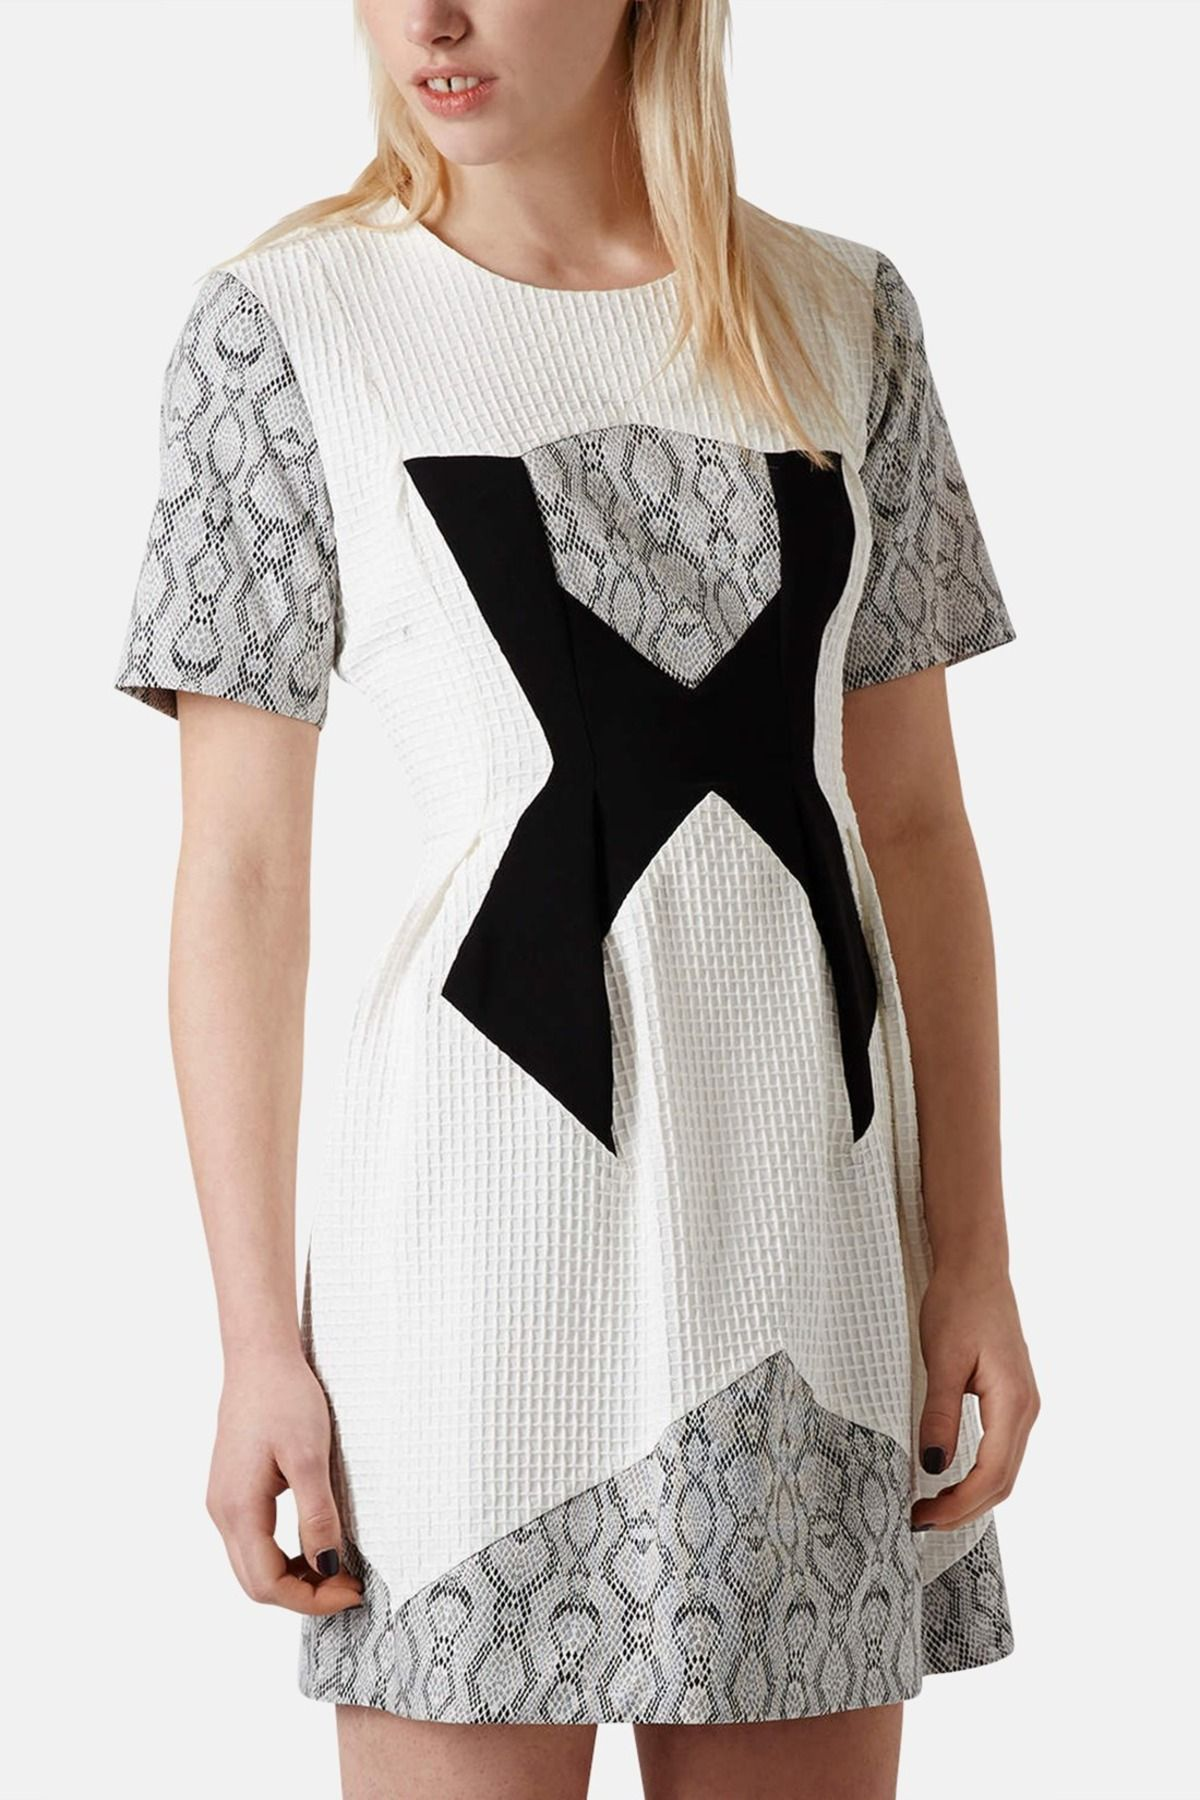 TOPSHOP Topshop Mixed Media Fit & Flare Dress by TOPSHOP on @nordstrom_rack